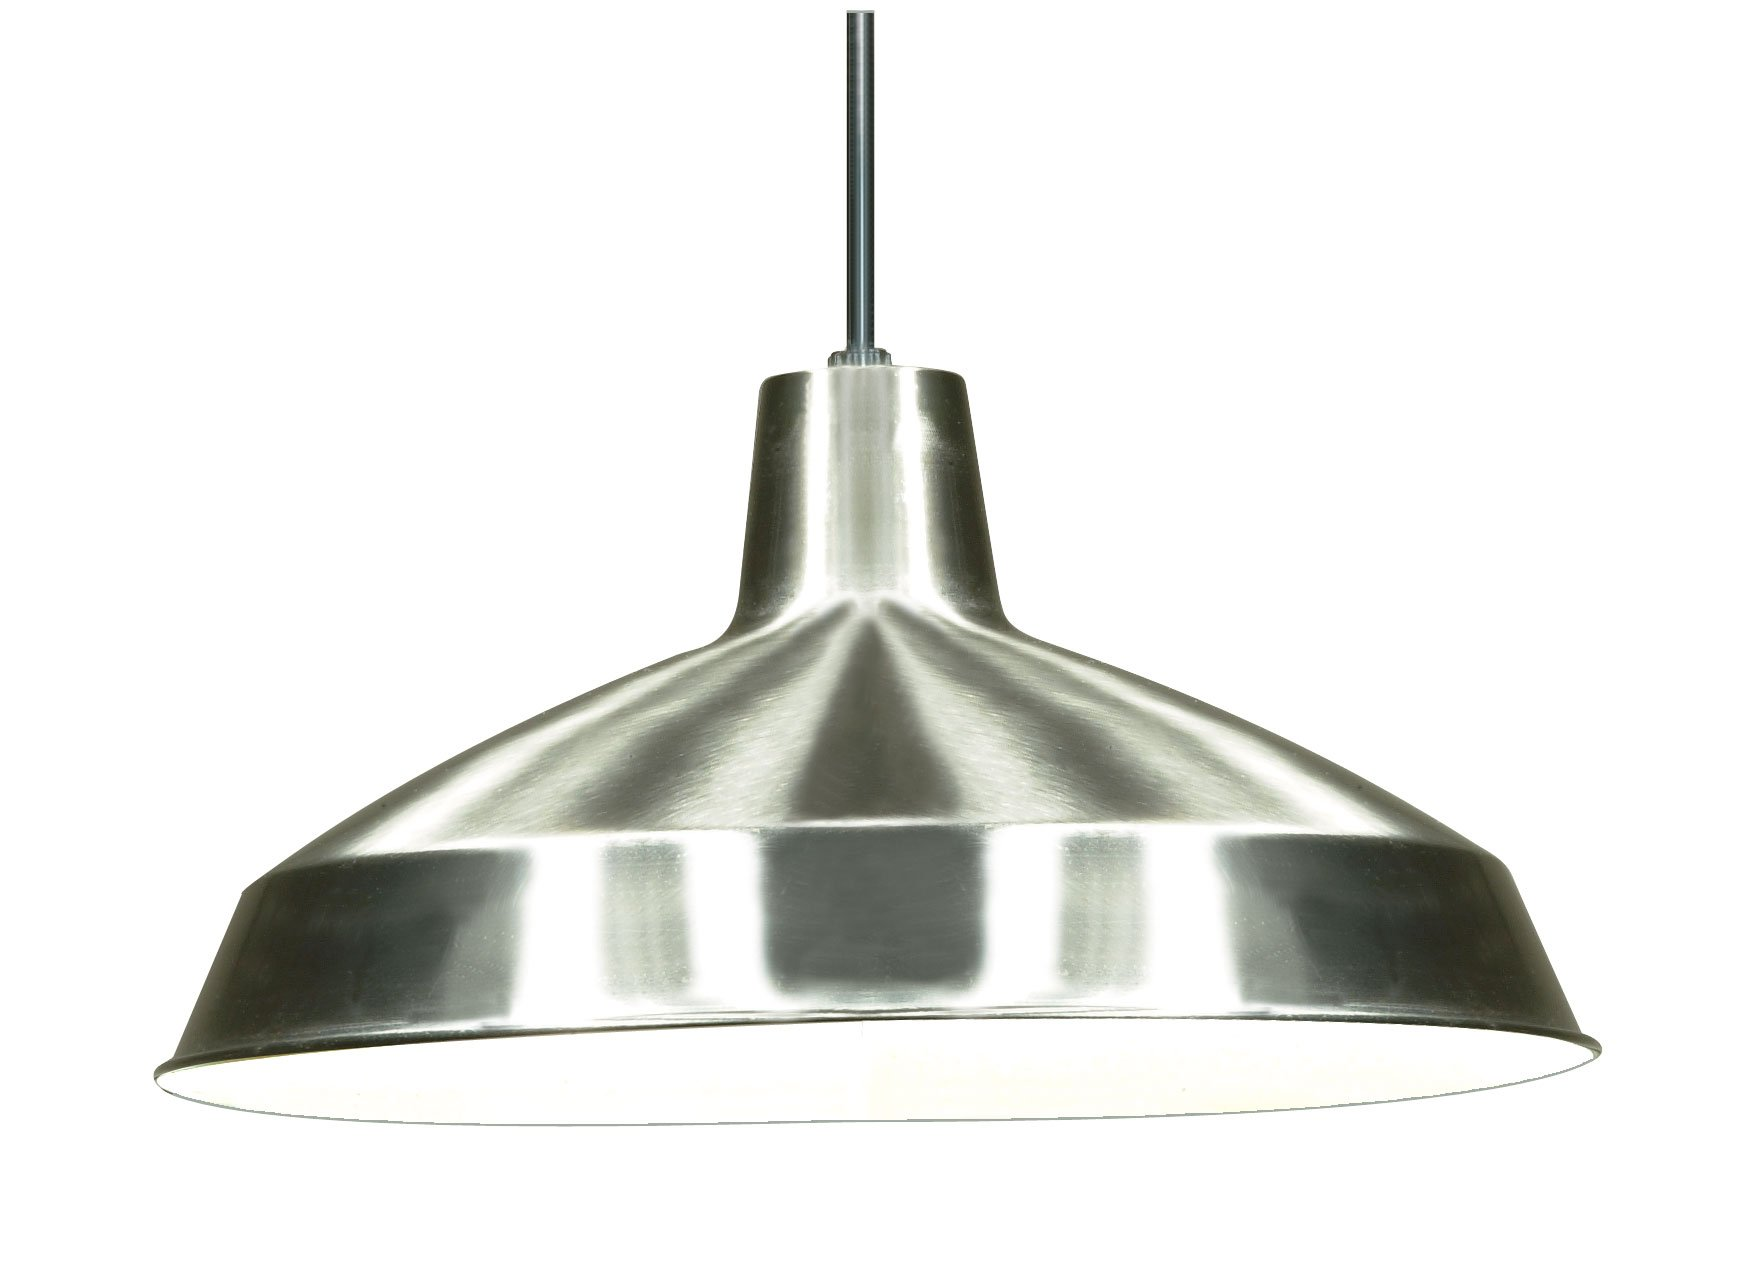 Nuvo Lighting SF76/661 Warehouse Shade, Brushed-Nickel by Nuvo Lighting